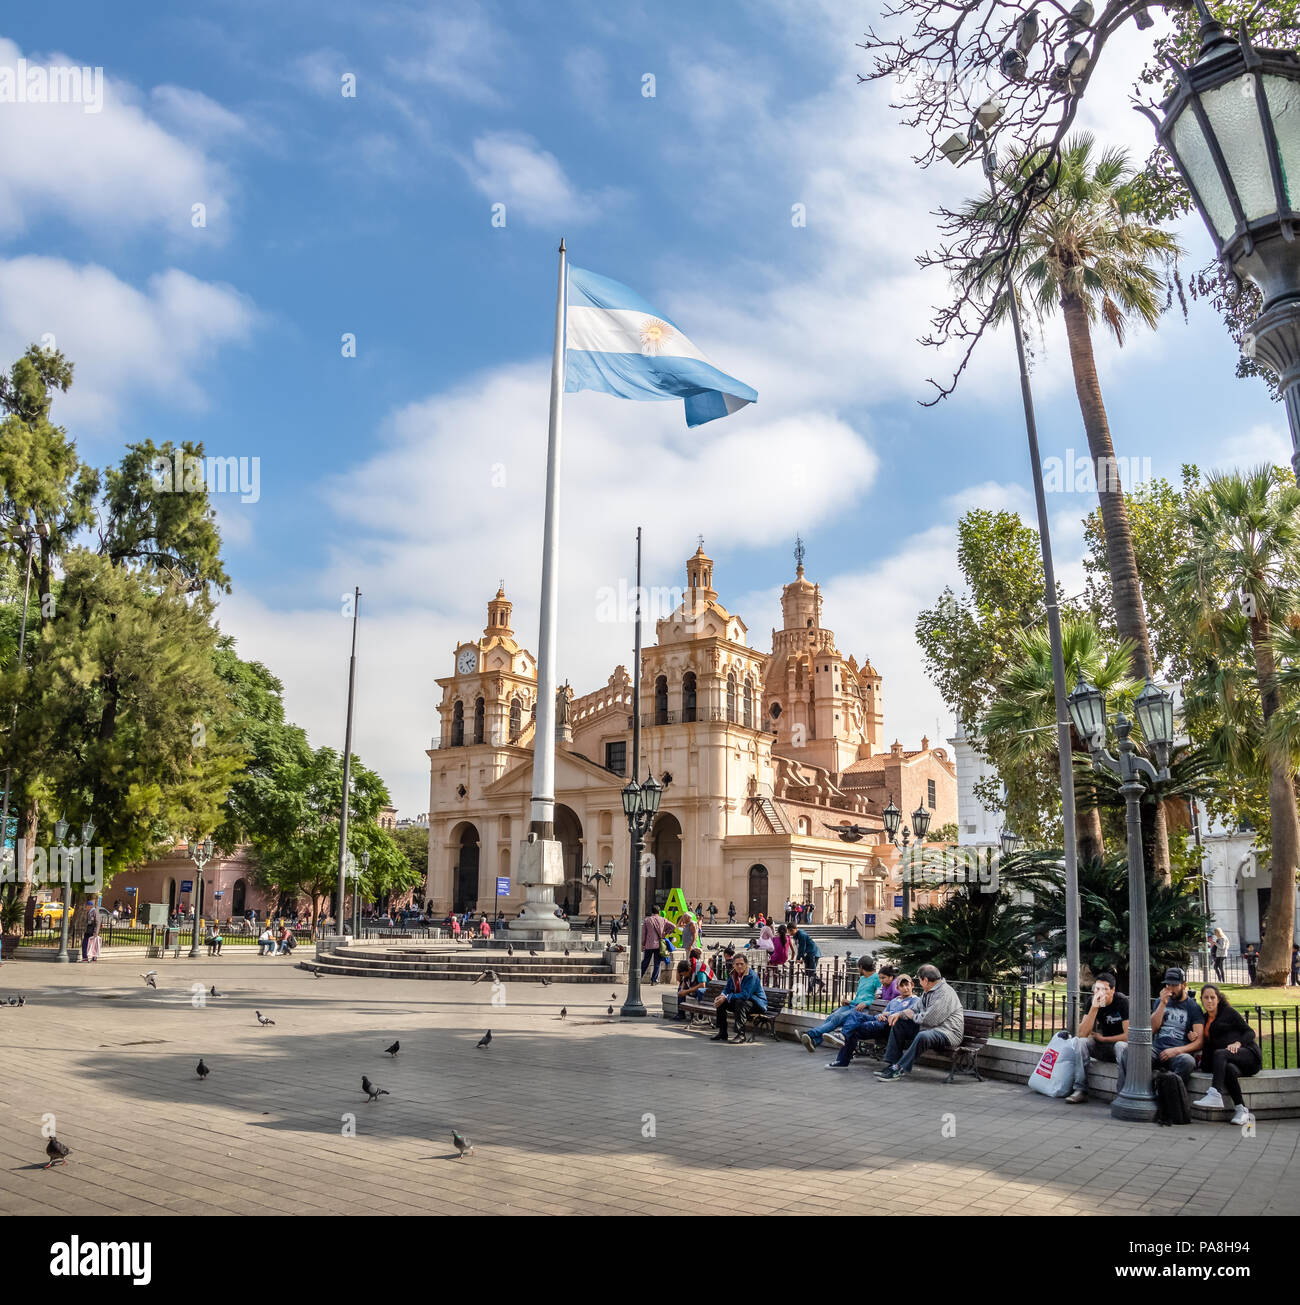 San Martin Square and Cordoba Cathedral - Cordoba, Argentina - Stock Image